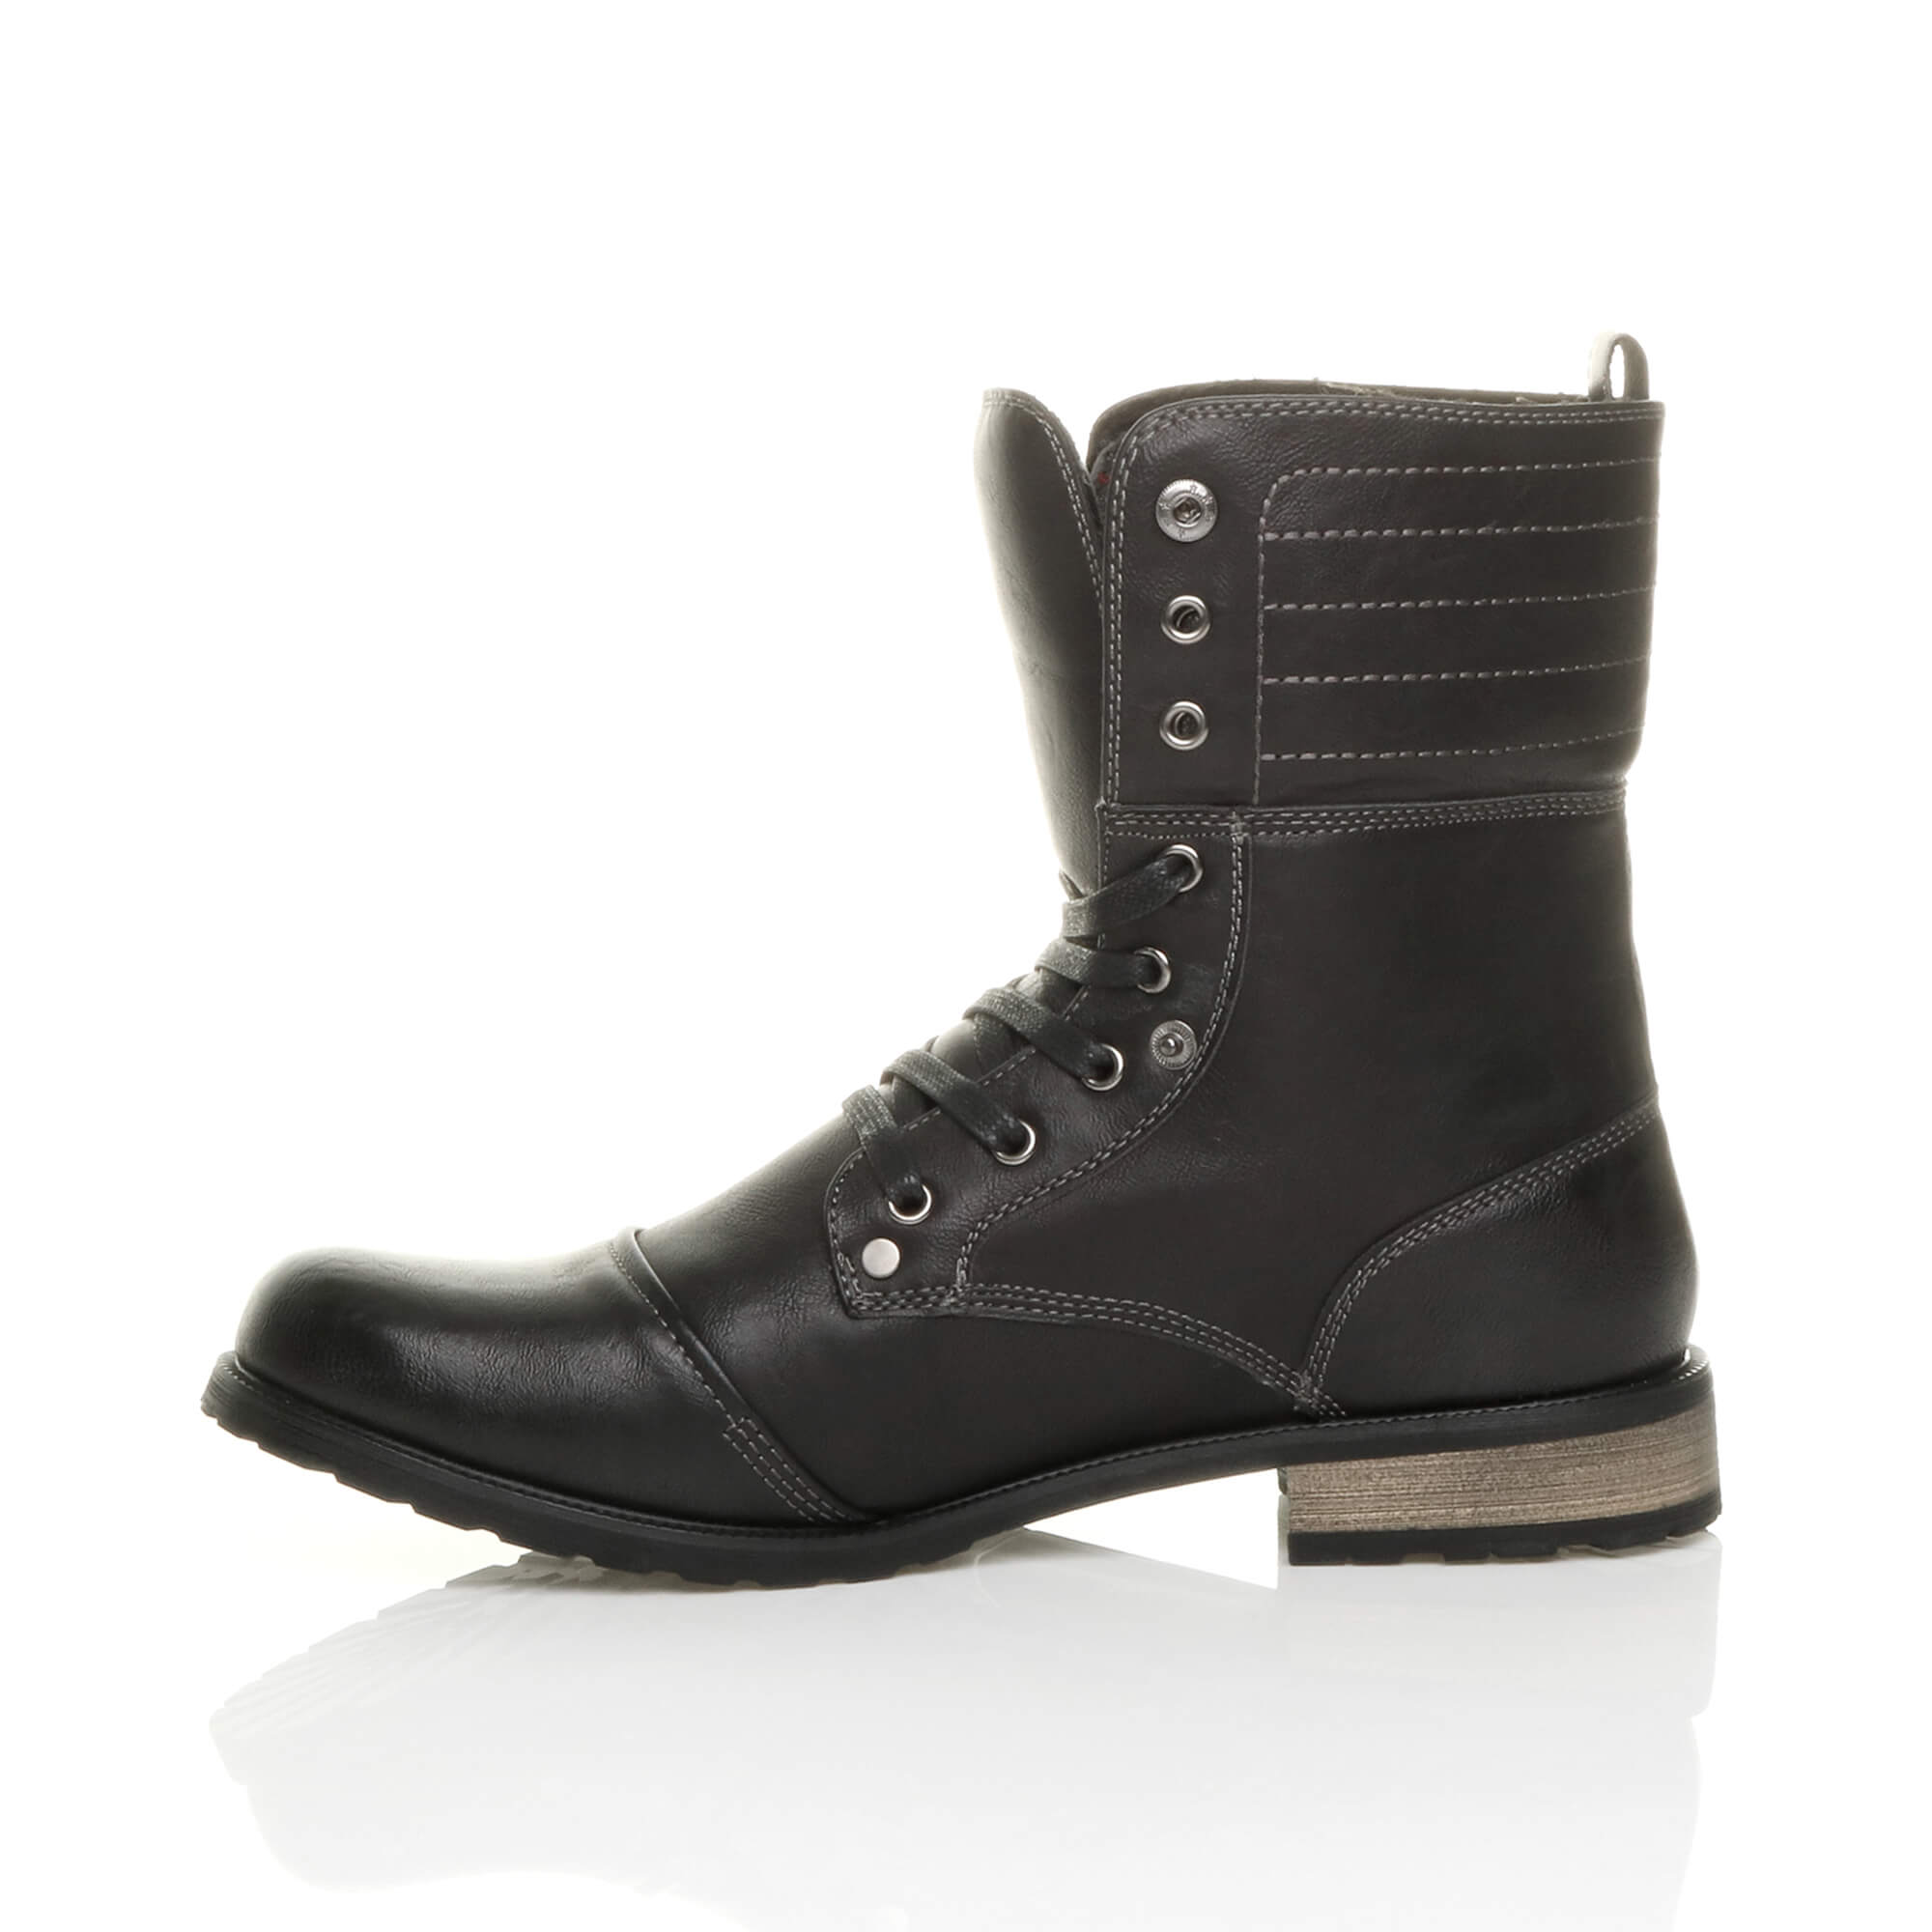 Mens-lace-up-low-heel-flat-fold-over-padded-cuff-military-ankle-boots-size miniatuur 4